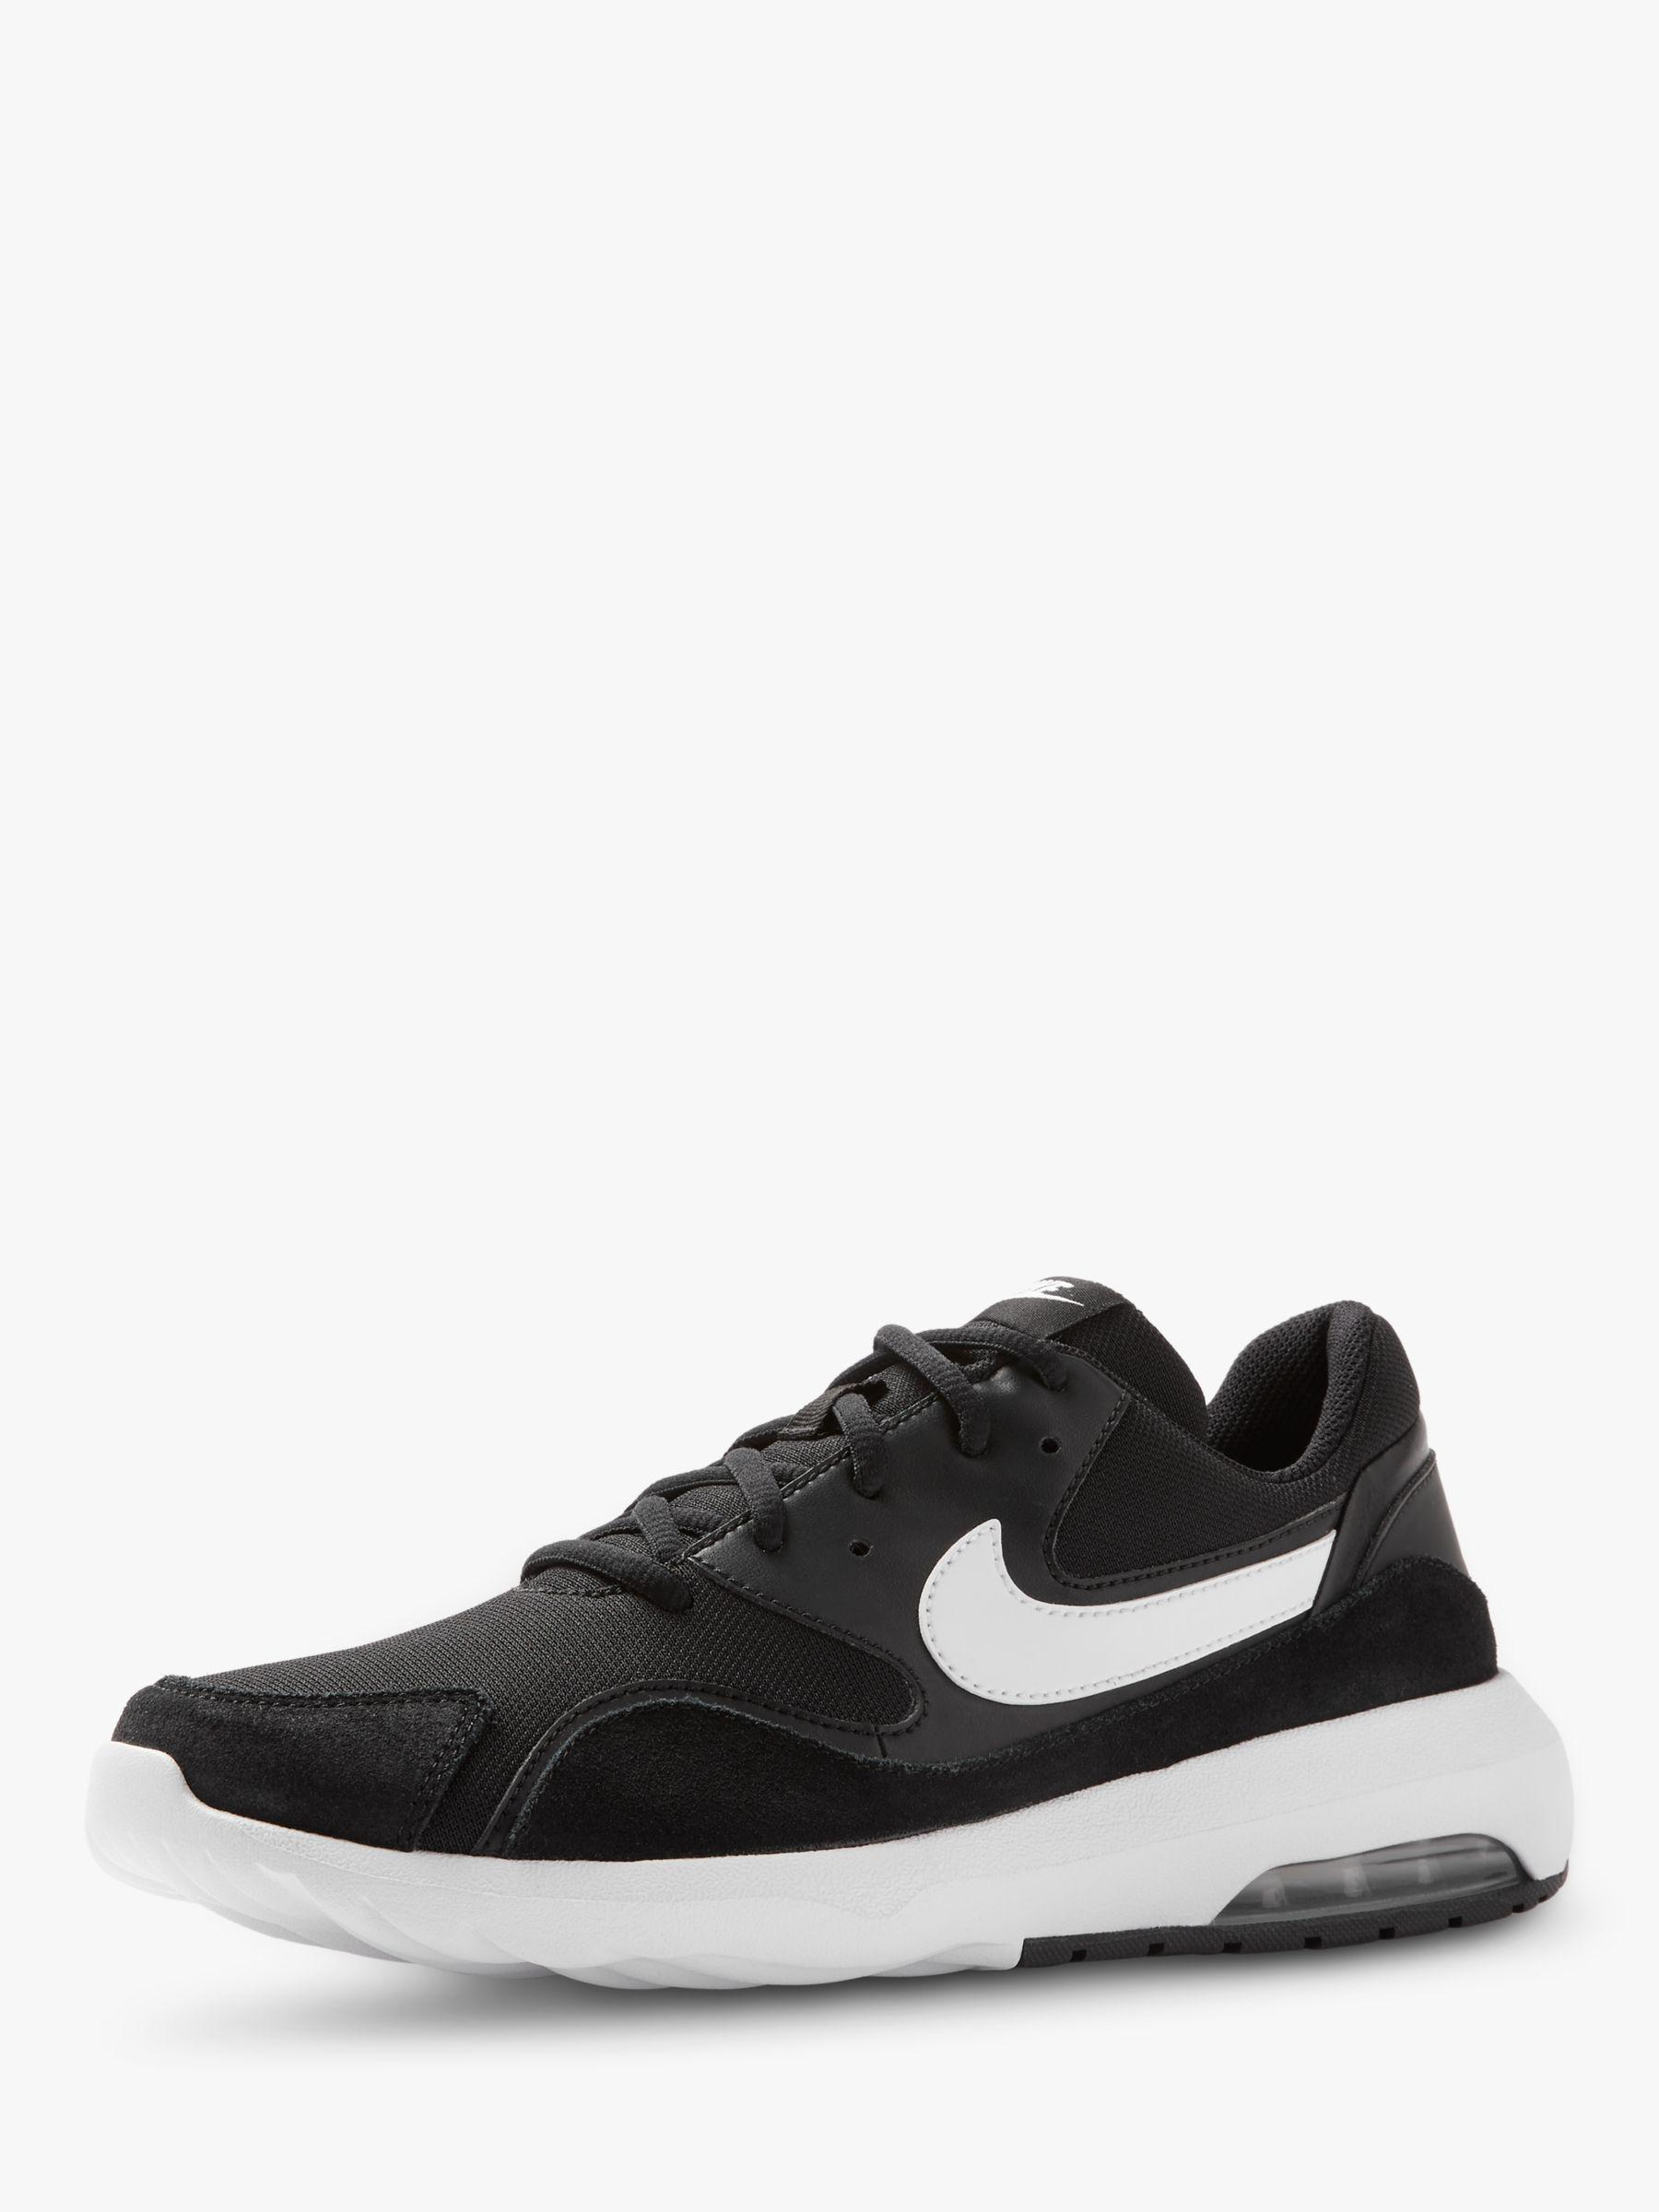 ee12e8983b6f94 Nike Air Max 90 Essential Men s Trainers in Black for Men - Lyst